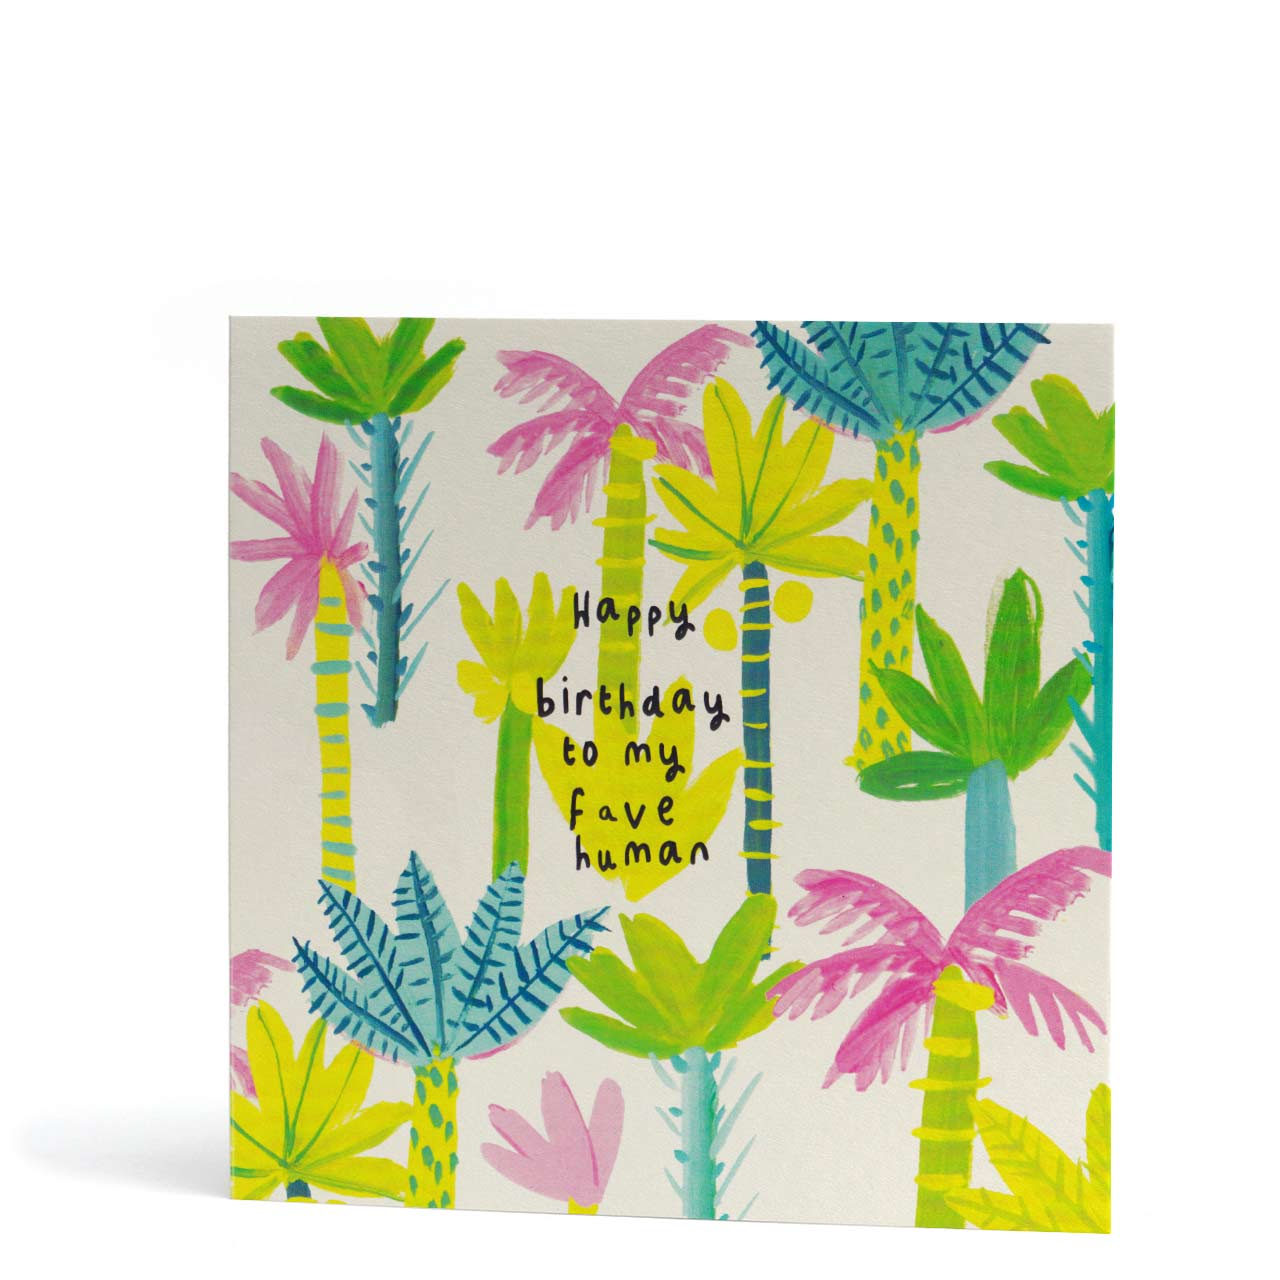 Fave Human Happy Birthday Greeting Card